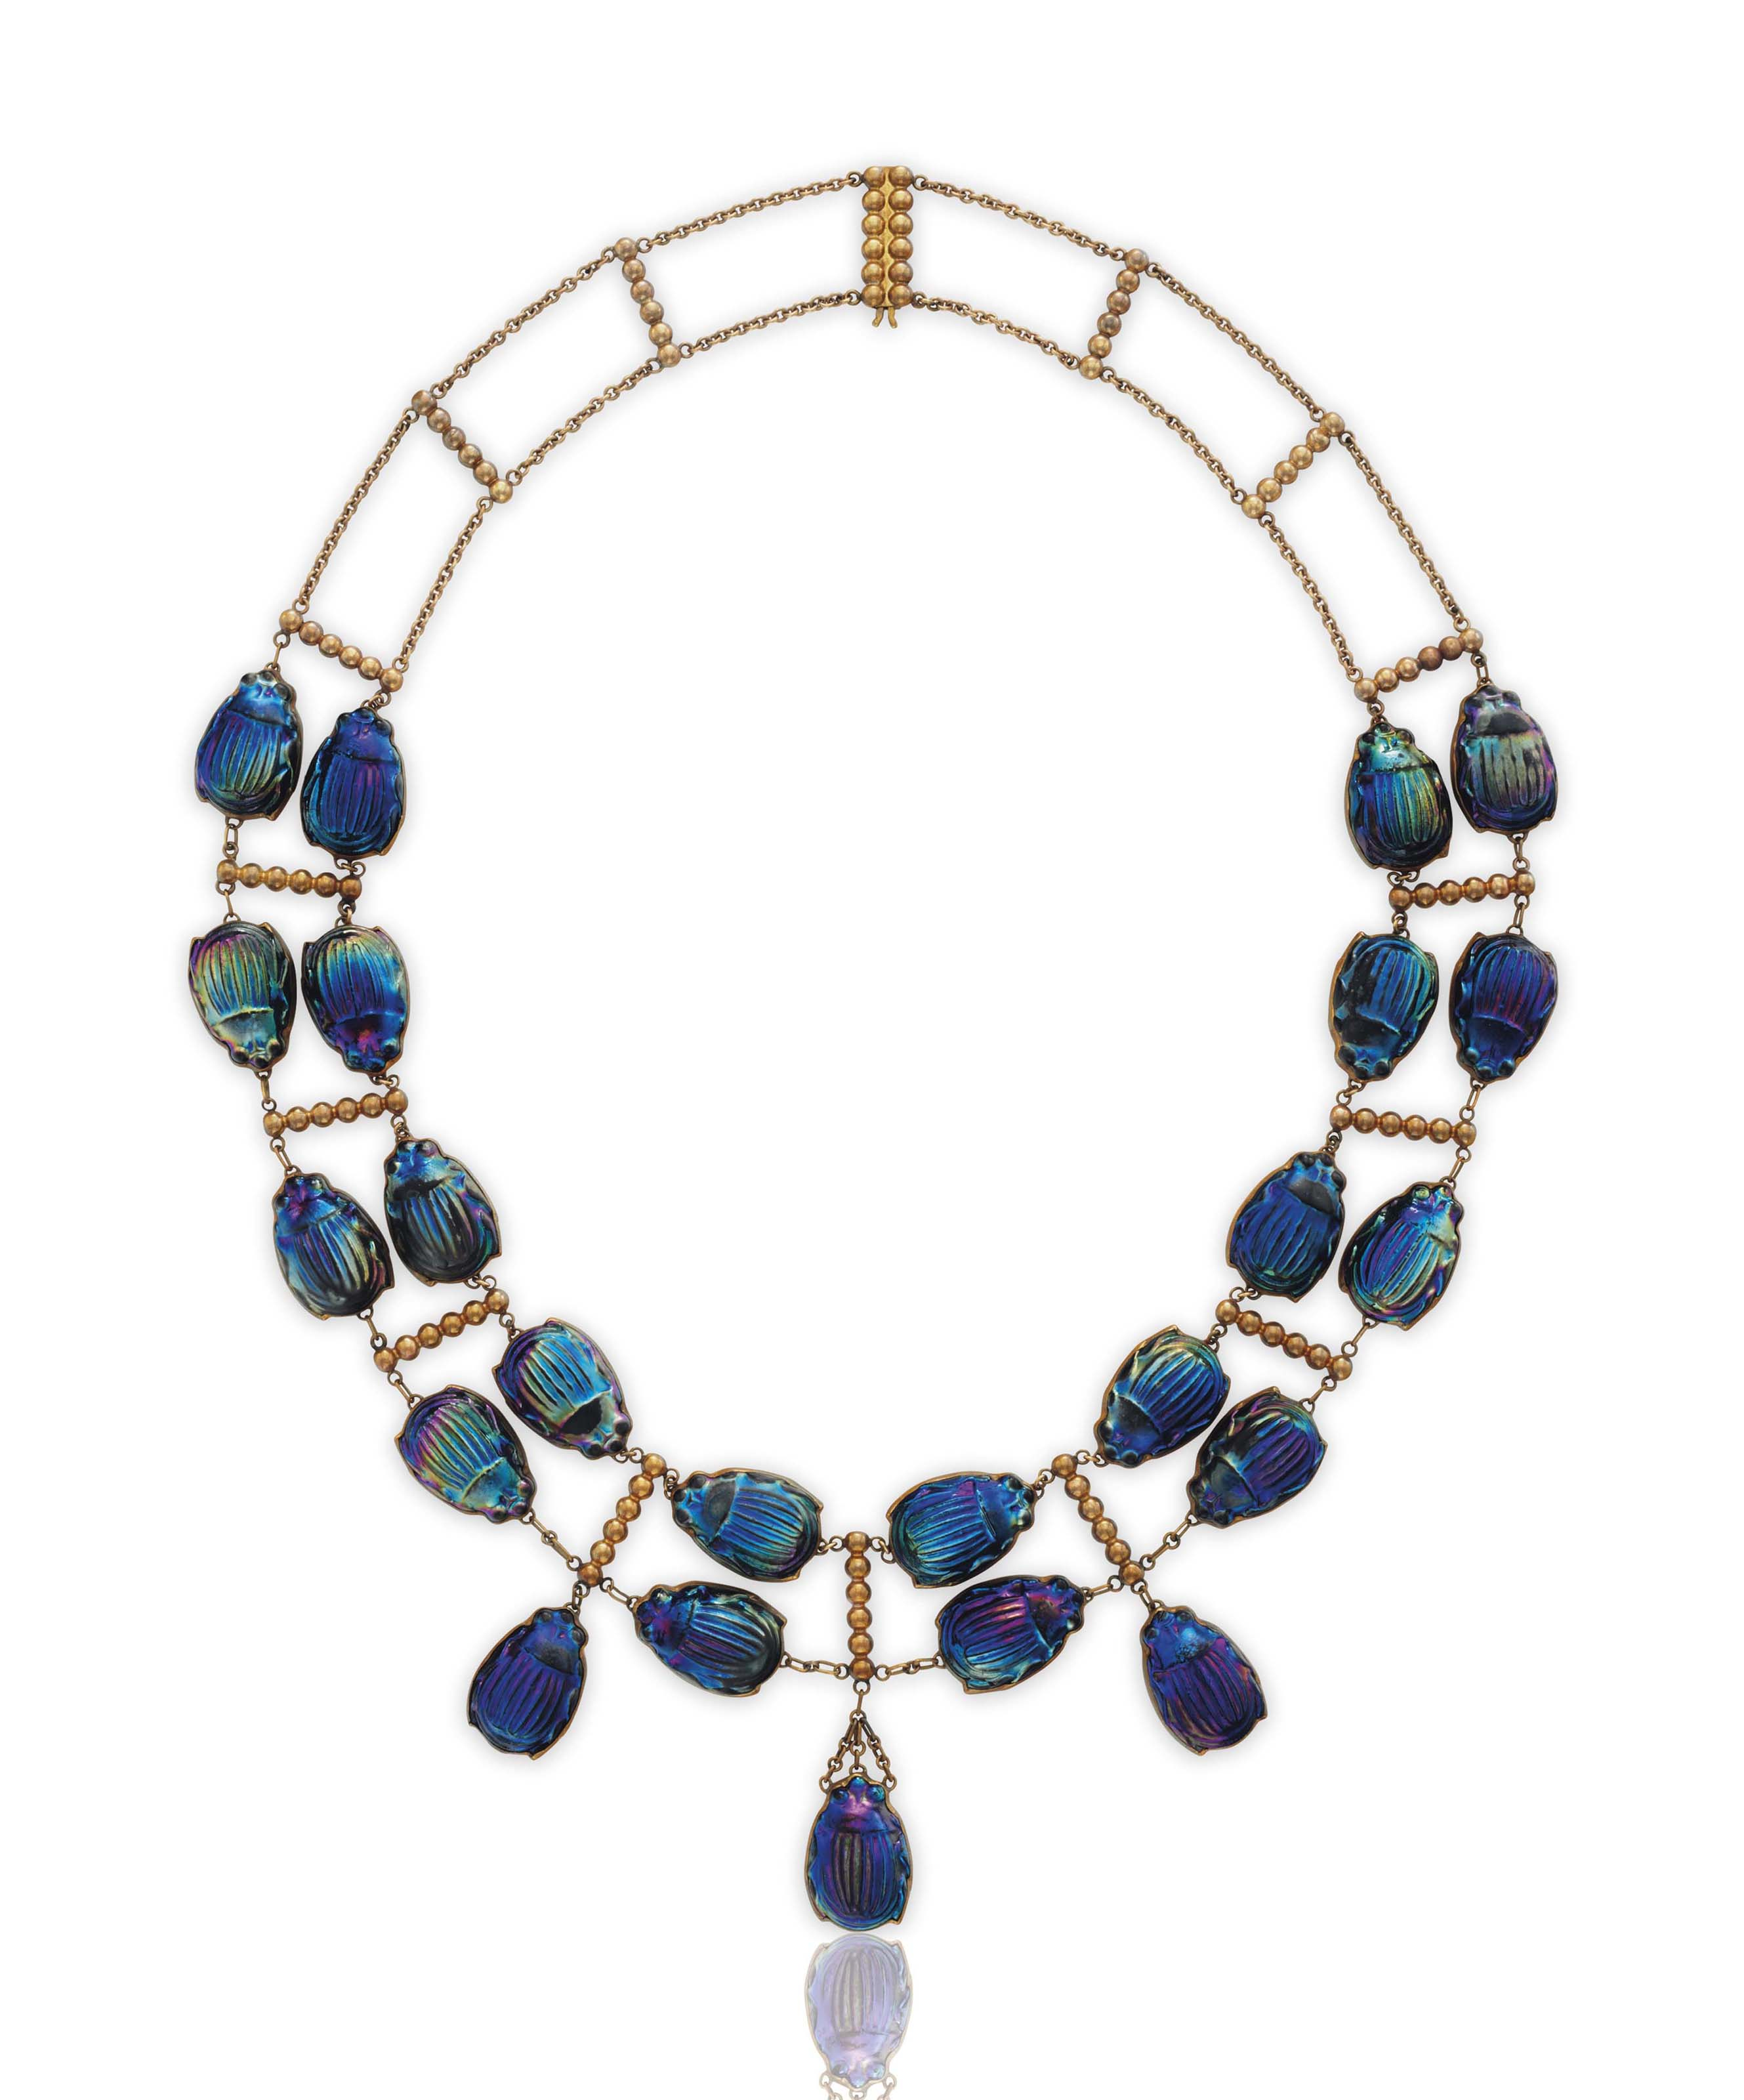 AN ICONIC FAVRILE GLASS BEETLE AND GOLD NECKLACE, BY LOUIS COMFORT TIFFANY, TIFFANY & CO.